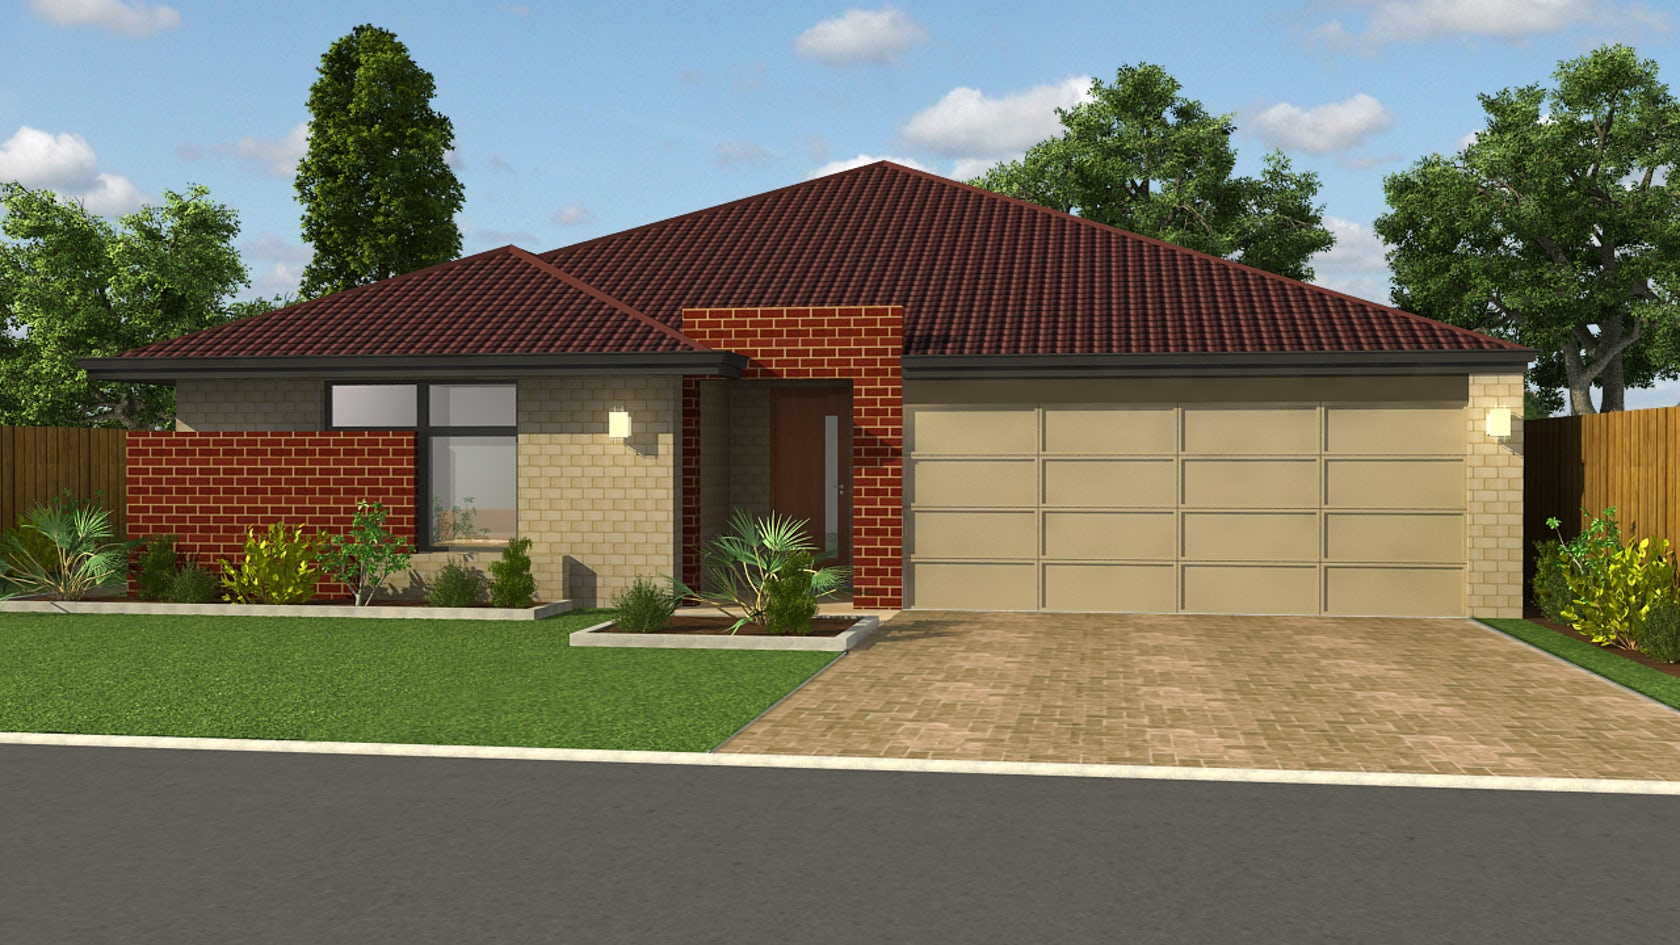 Beautiful Exterior Detailing of Roof Home Design in 3D by ...